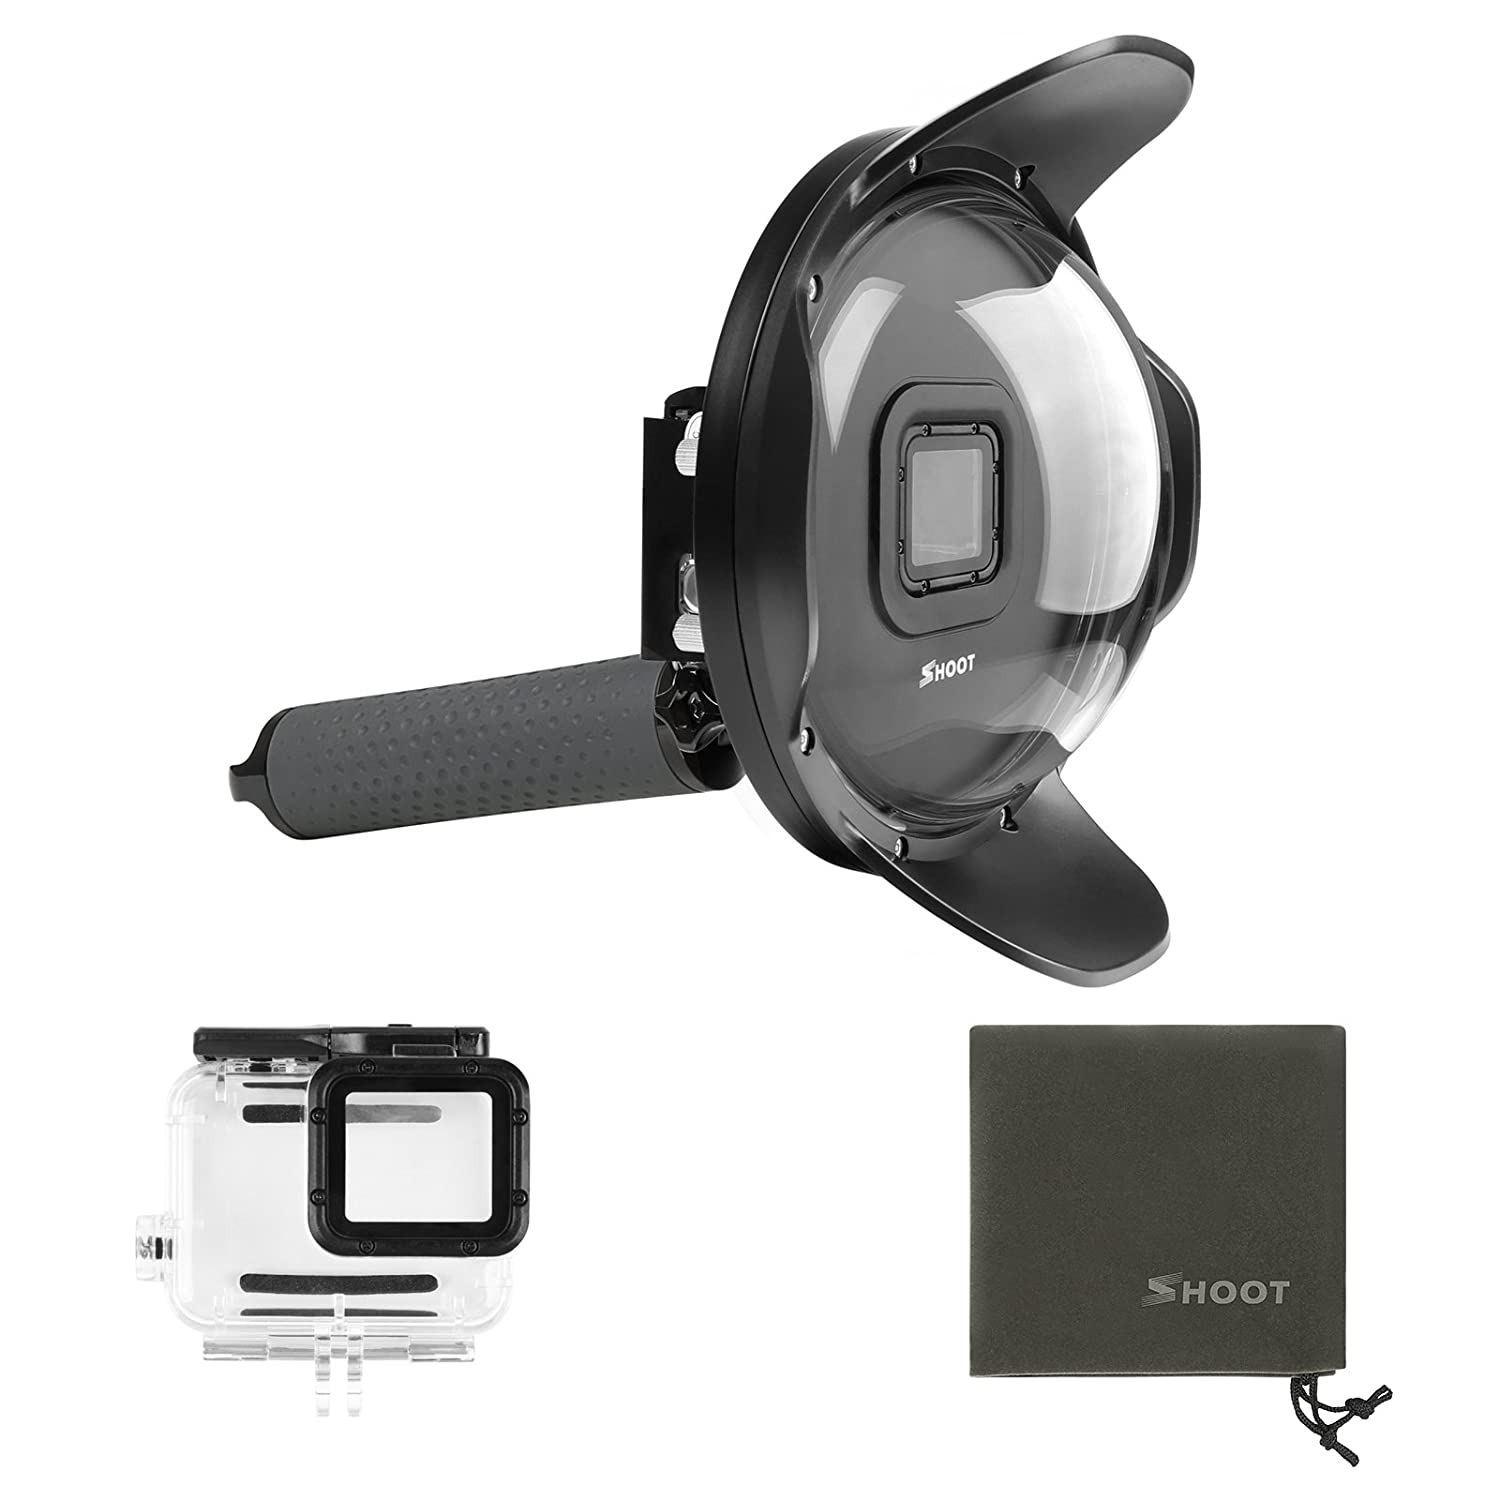 SHOOT 6'' Underwater Dome Port for GoPro Hero 6/Hero 5/Hero(2018) Black Camera Diving Lens Hood Housing Photography with Waterproof Case Accessories